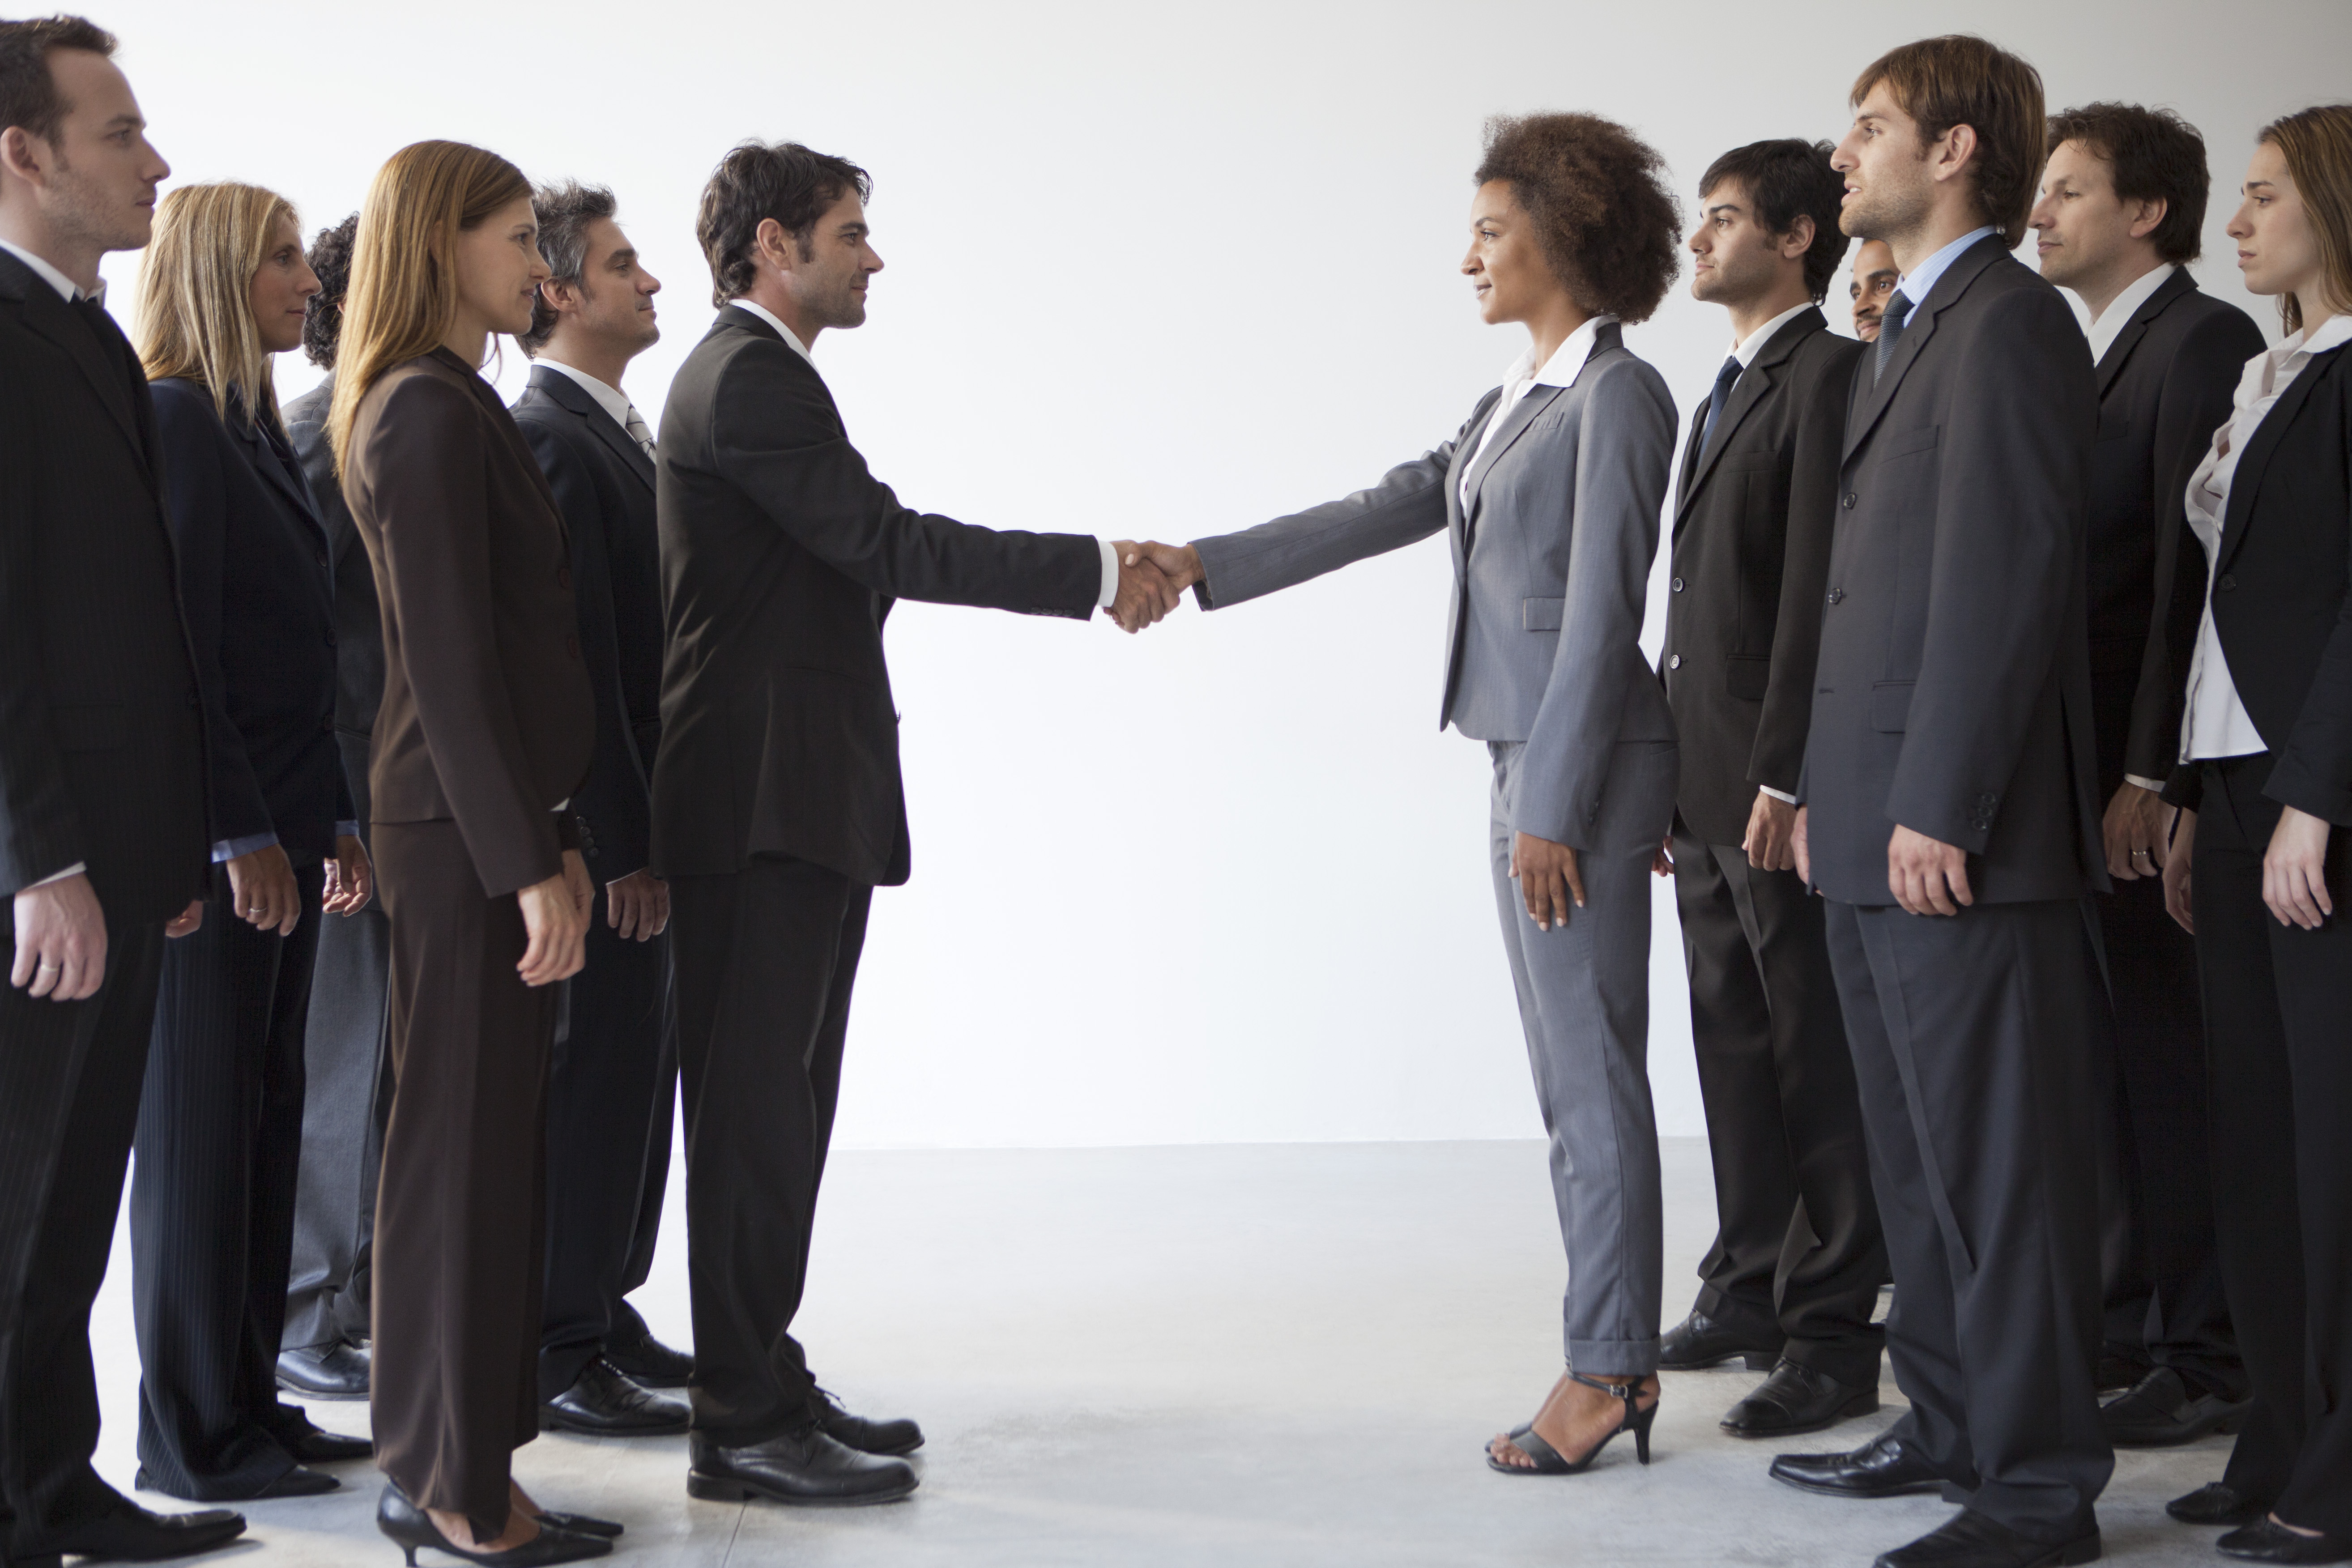 two groups of people shake hands